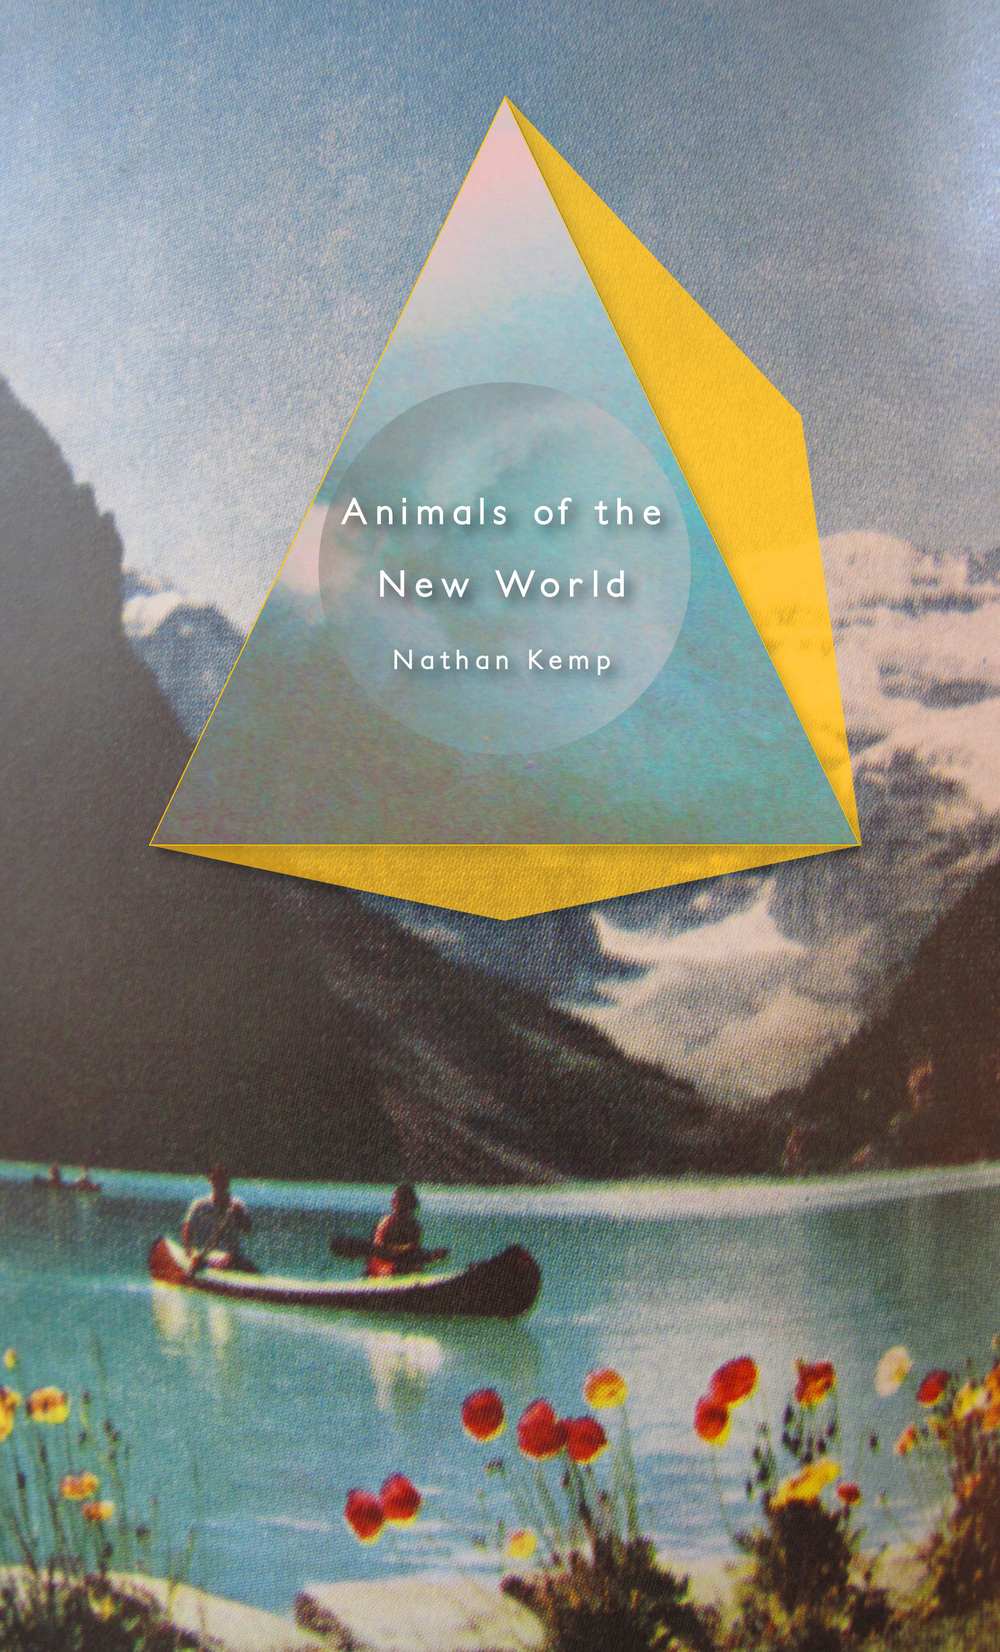 Animals of the New World  by Nathan Kemp (H_NGM_N, 2015) |  Full PDF